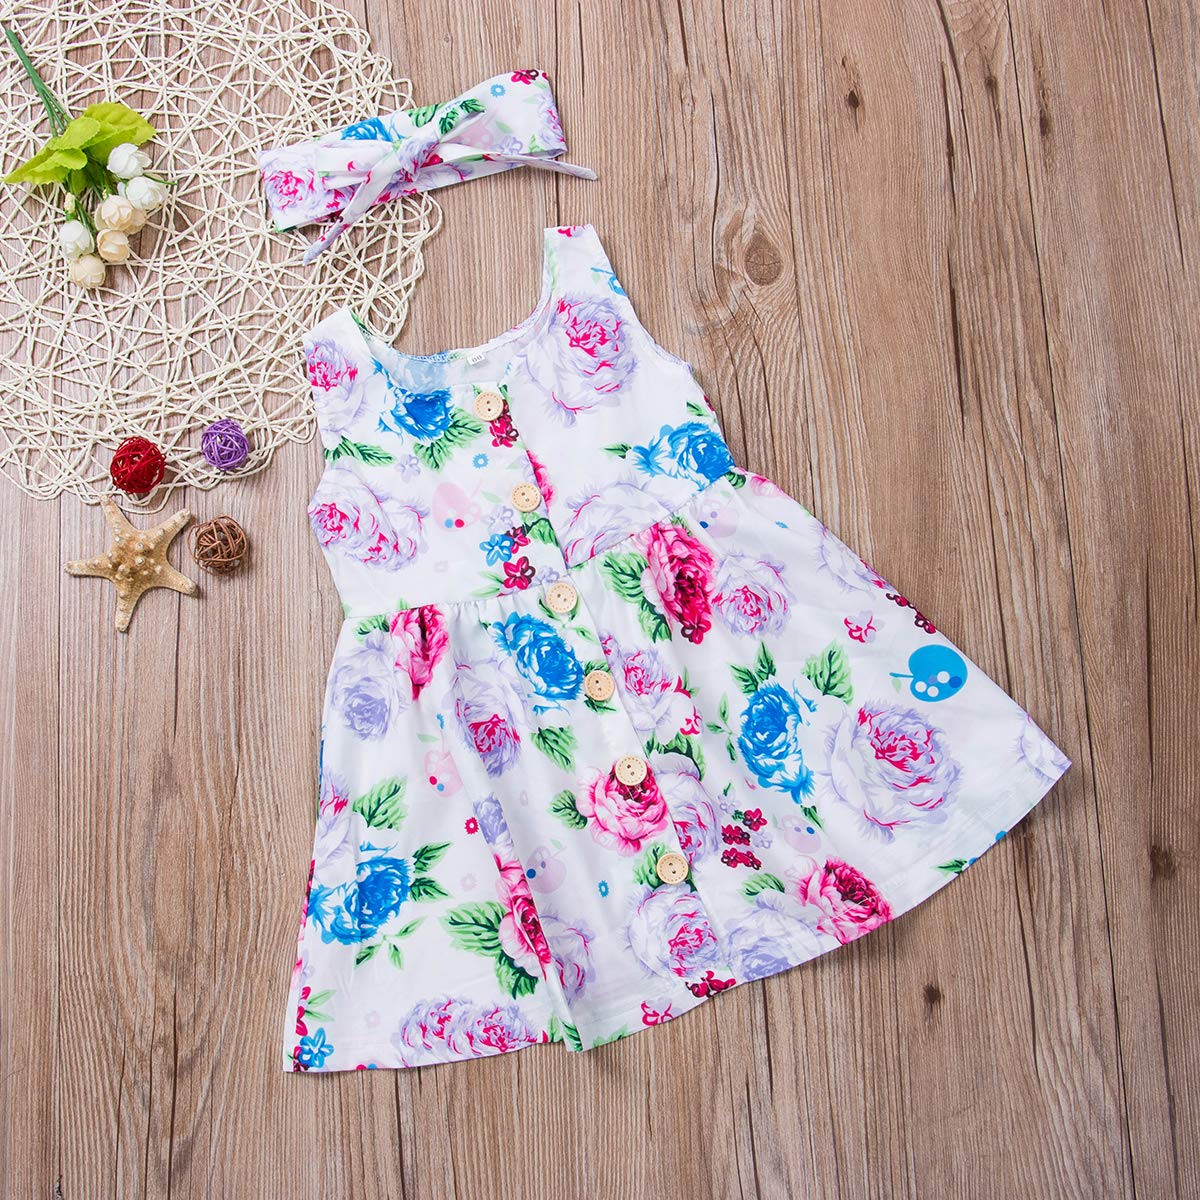 Luckylife Toddler Kids Baby Girl 2Pcs Cute Outfits Floral Party Dresses Sundress Headband Summer Clothes Set 6 Months- 4 Years